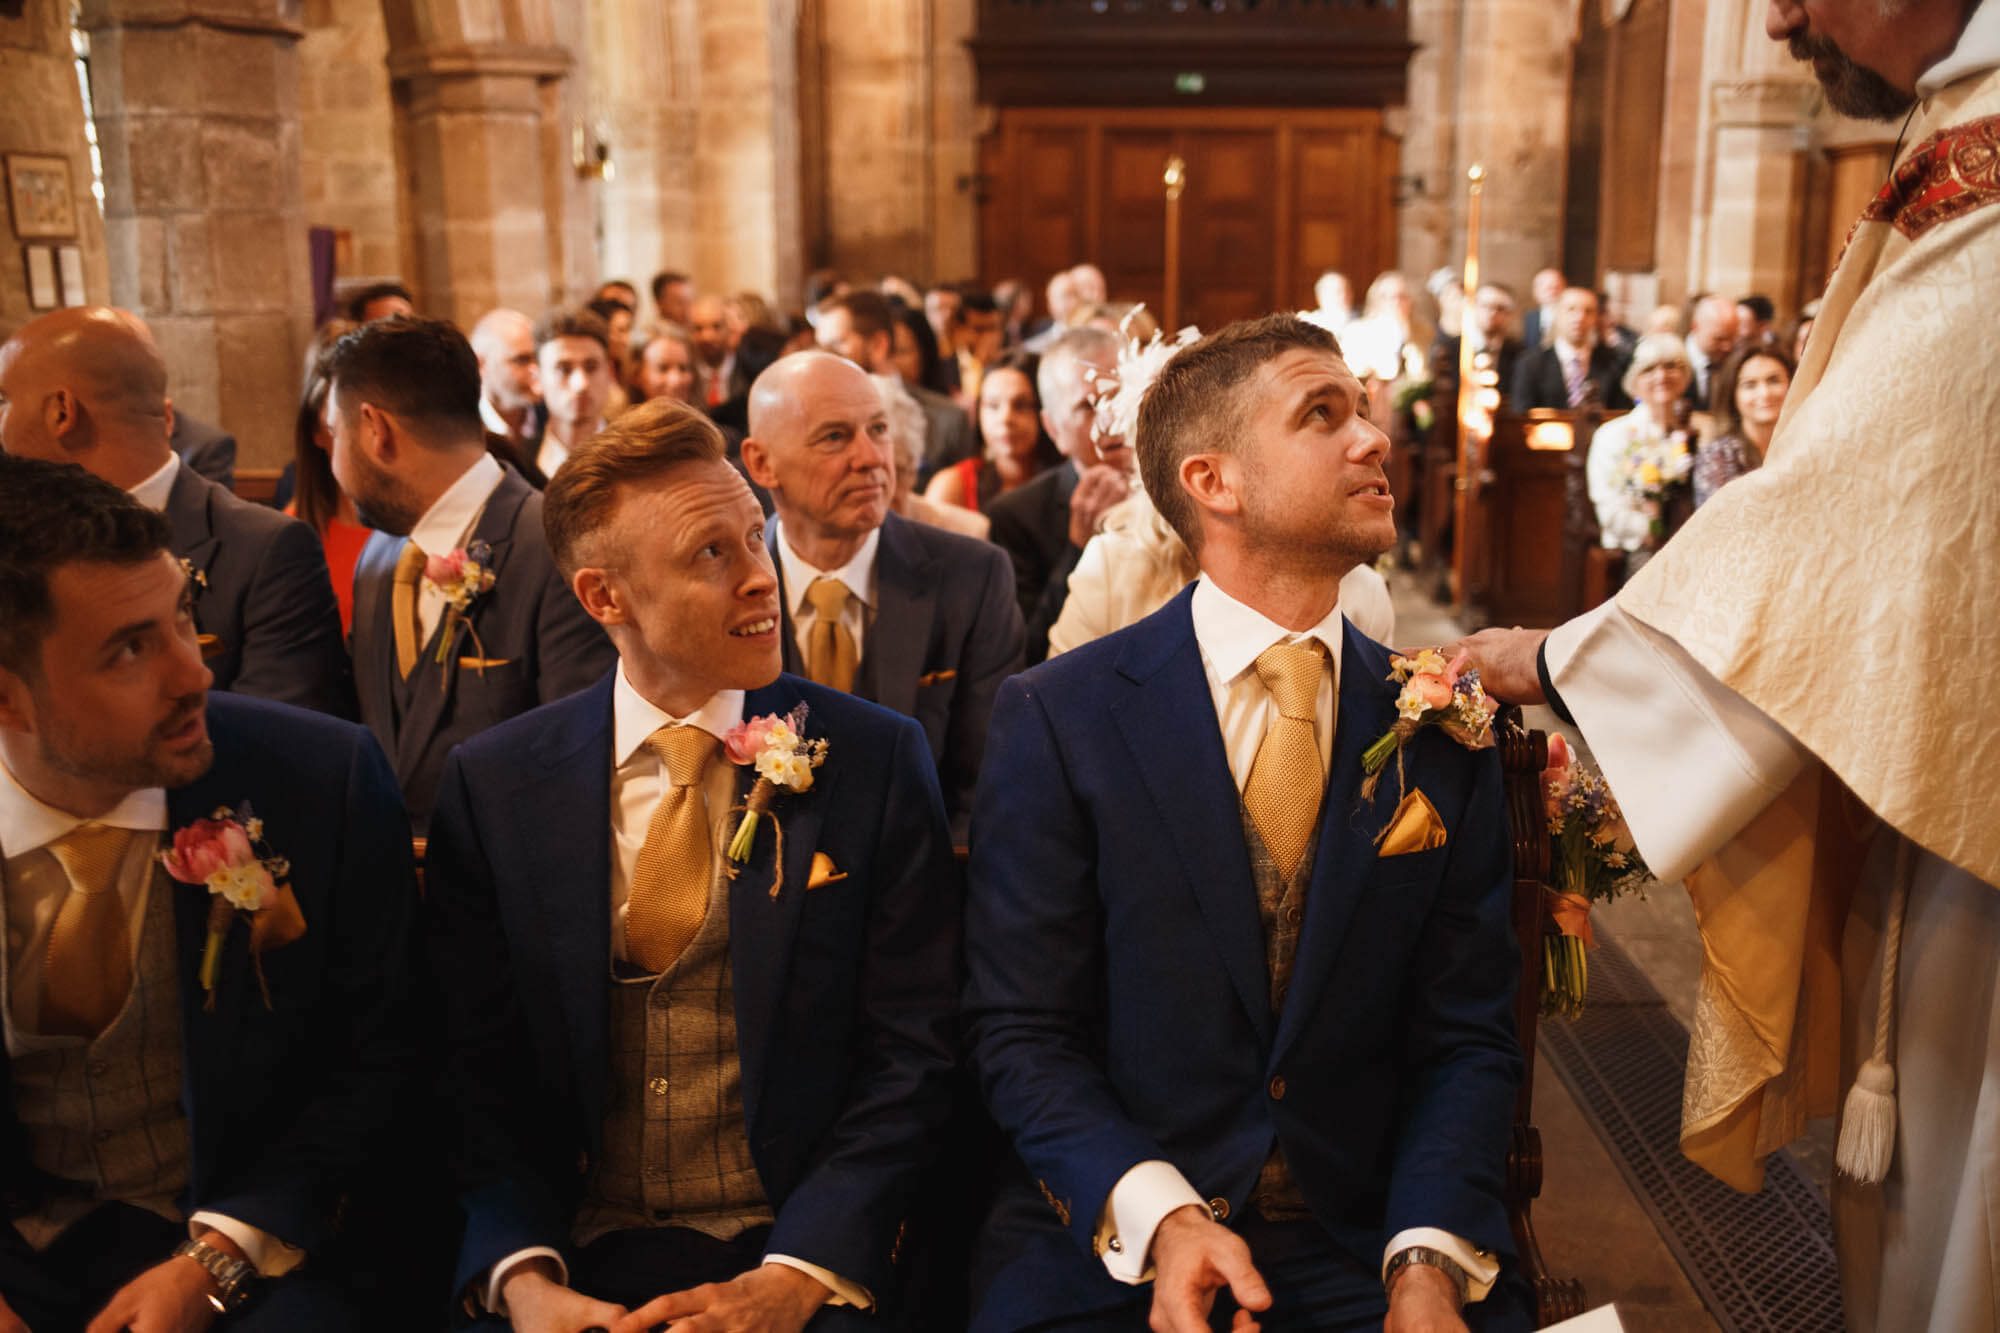 priest calms the groom in church